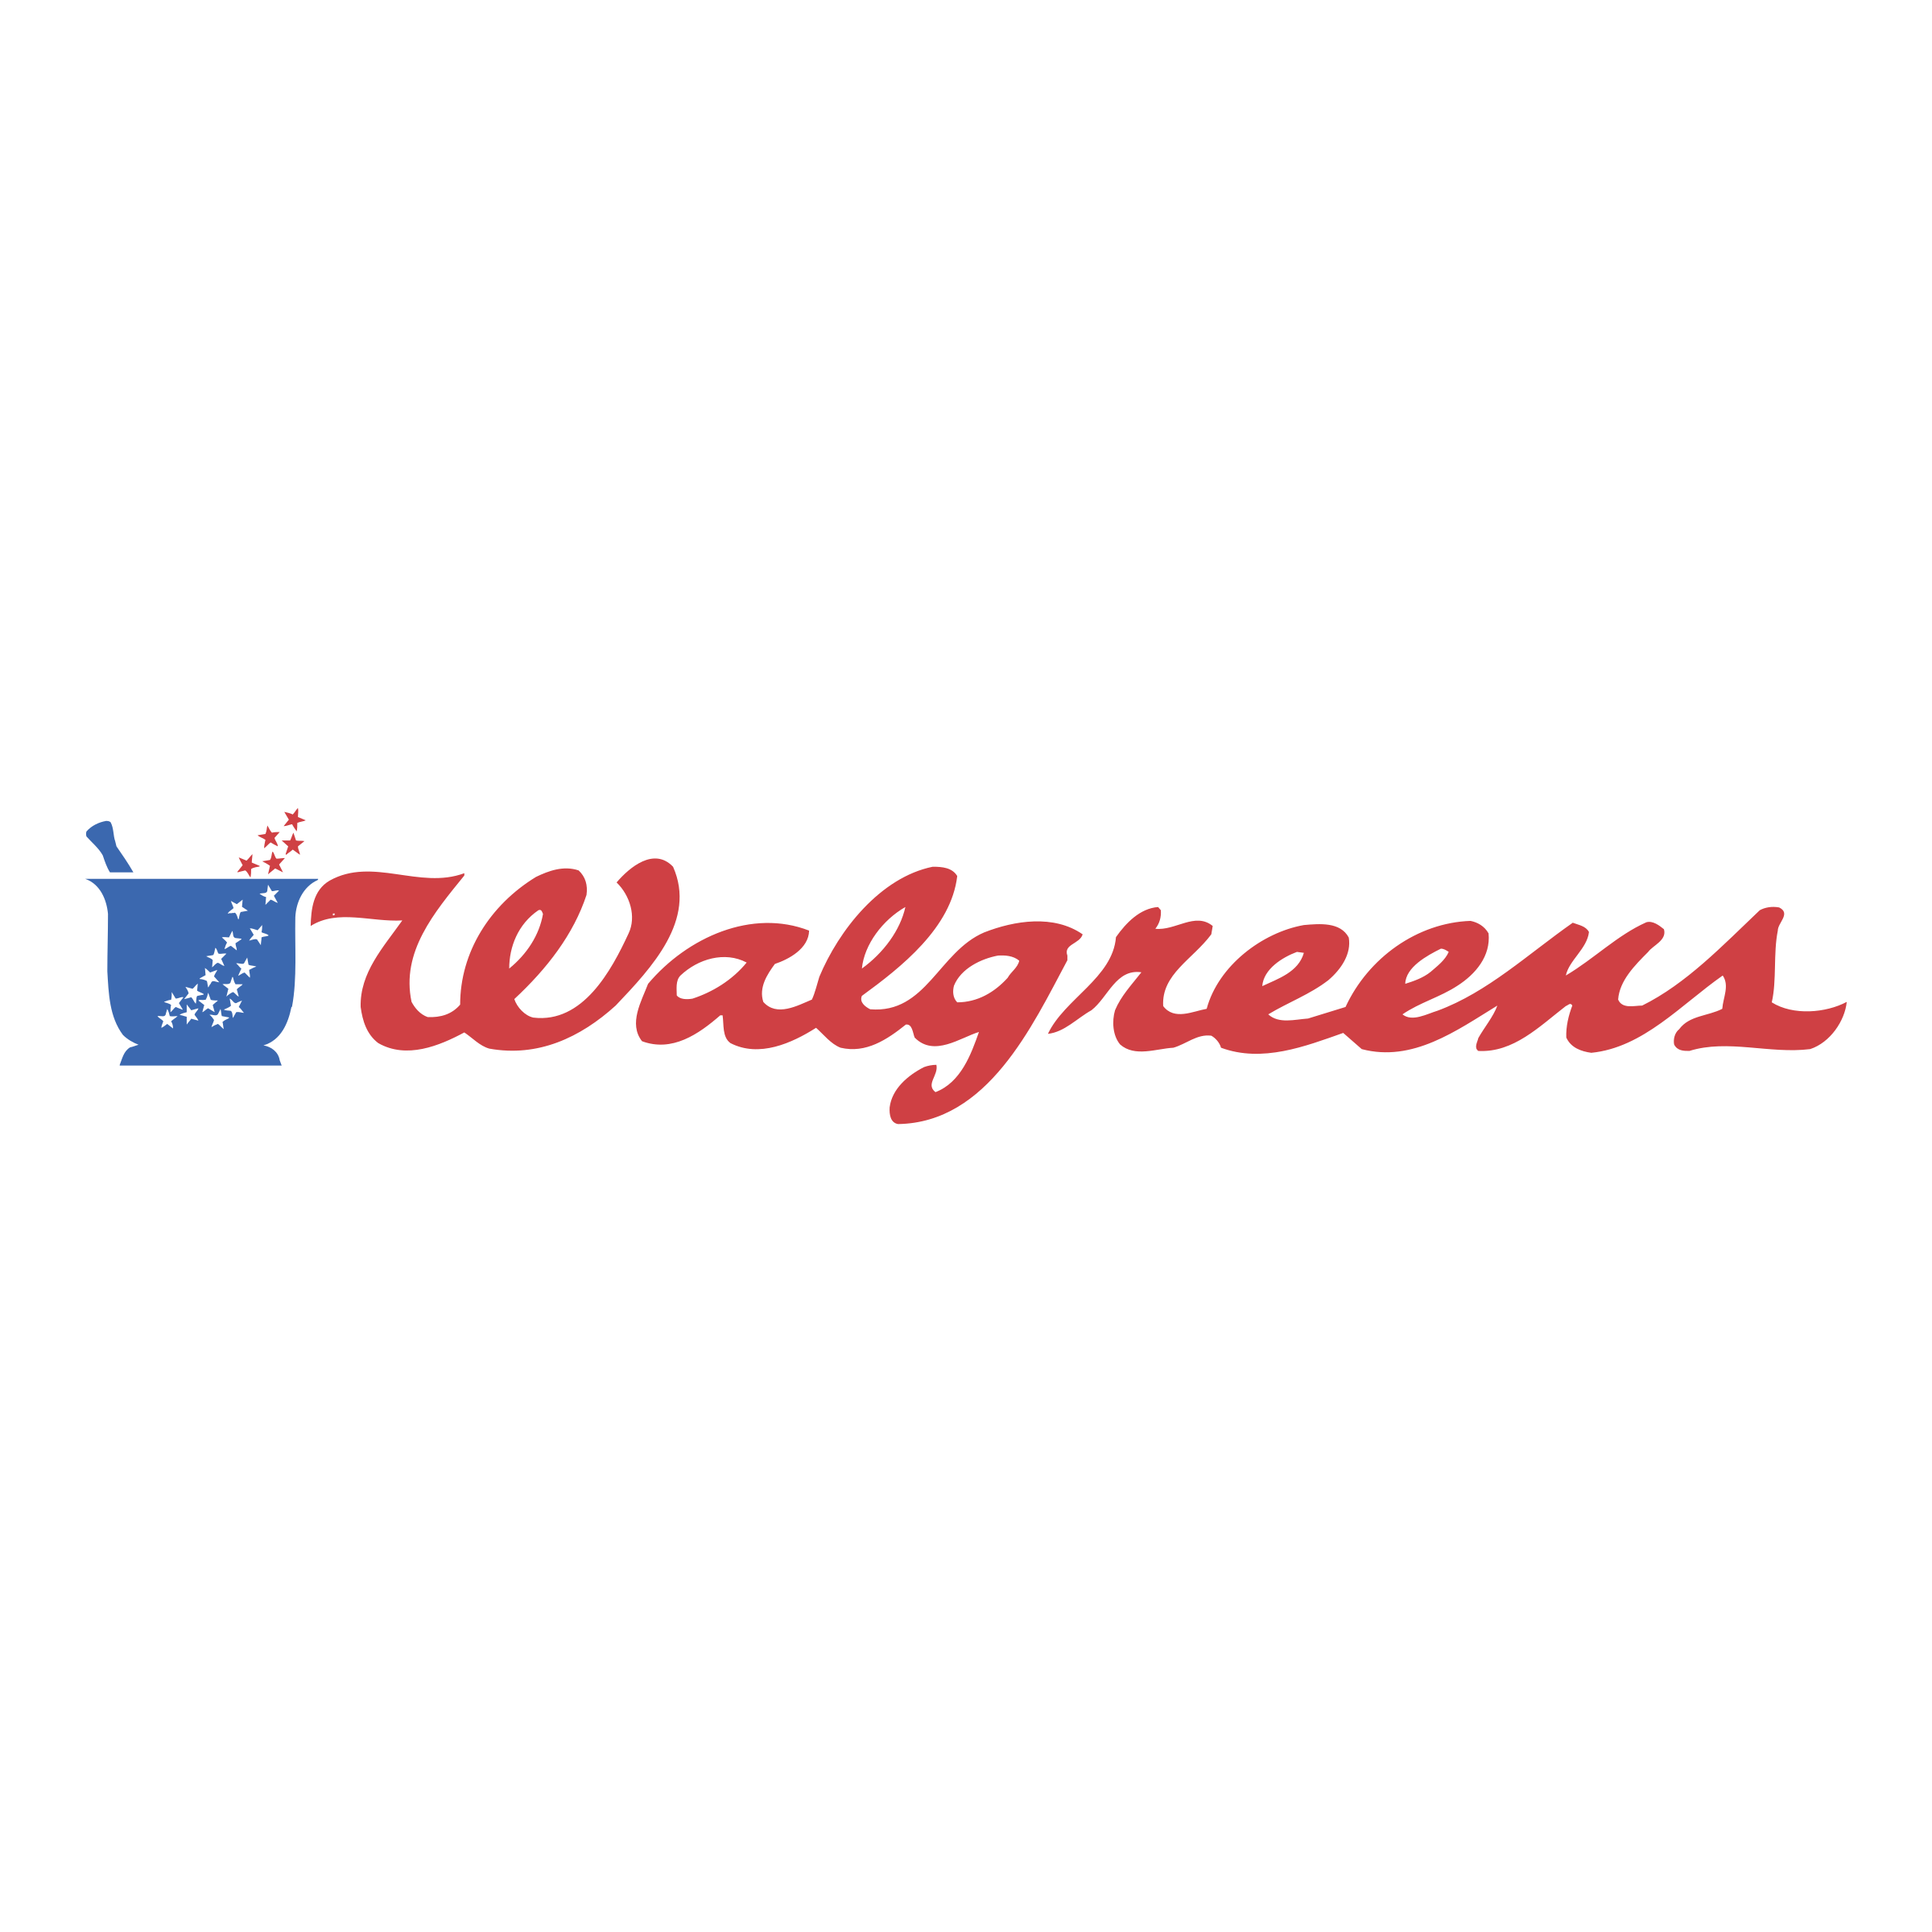 Walgreens logo png. Transparent svg vector freebie